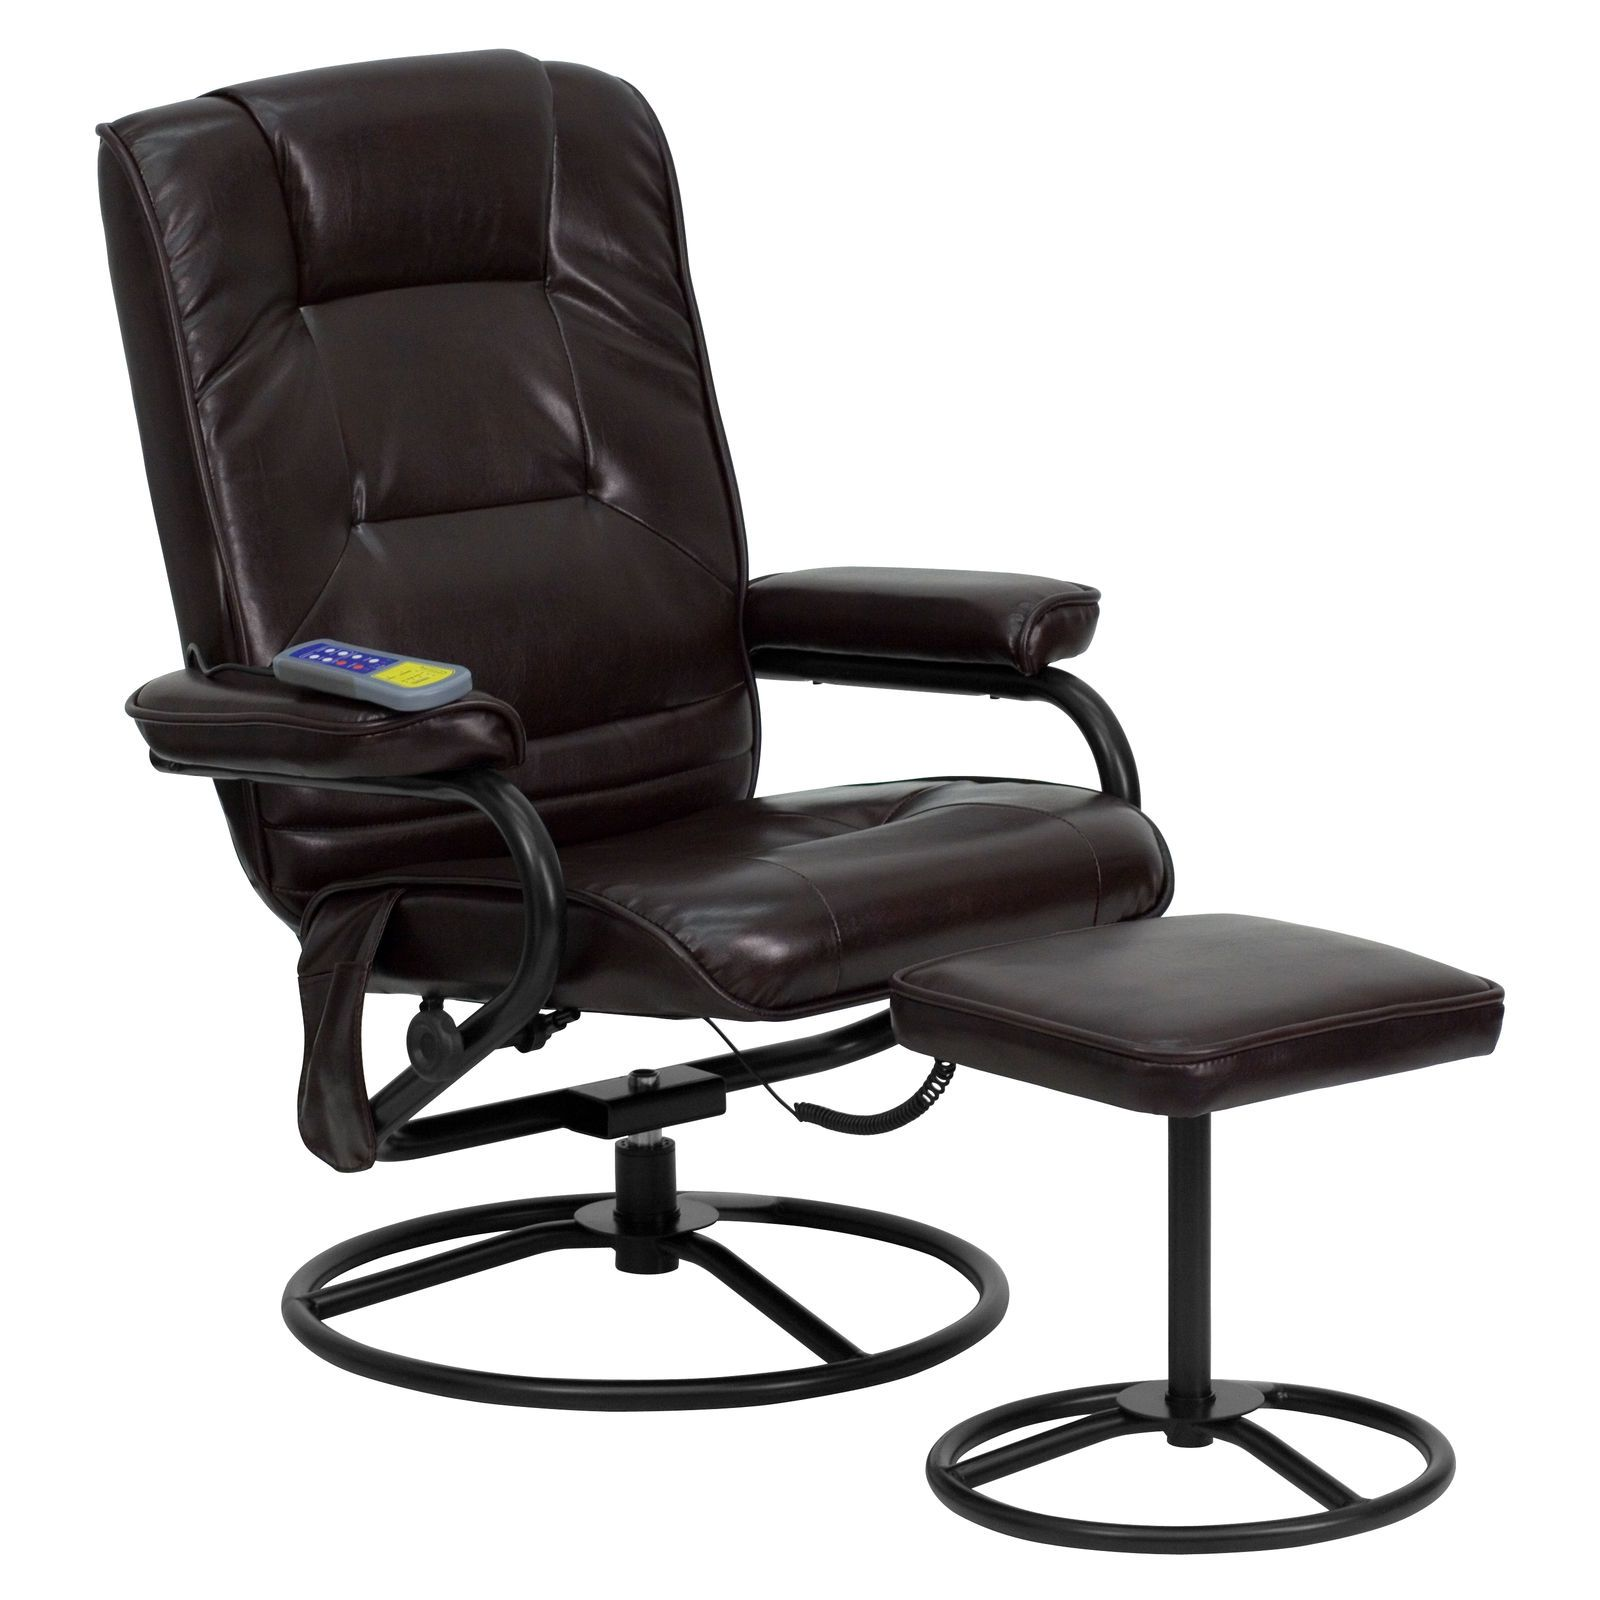 195.49 Massaging Brown Leather Recliner and Ottoman